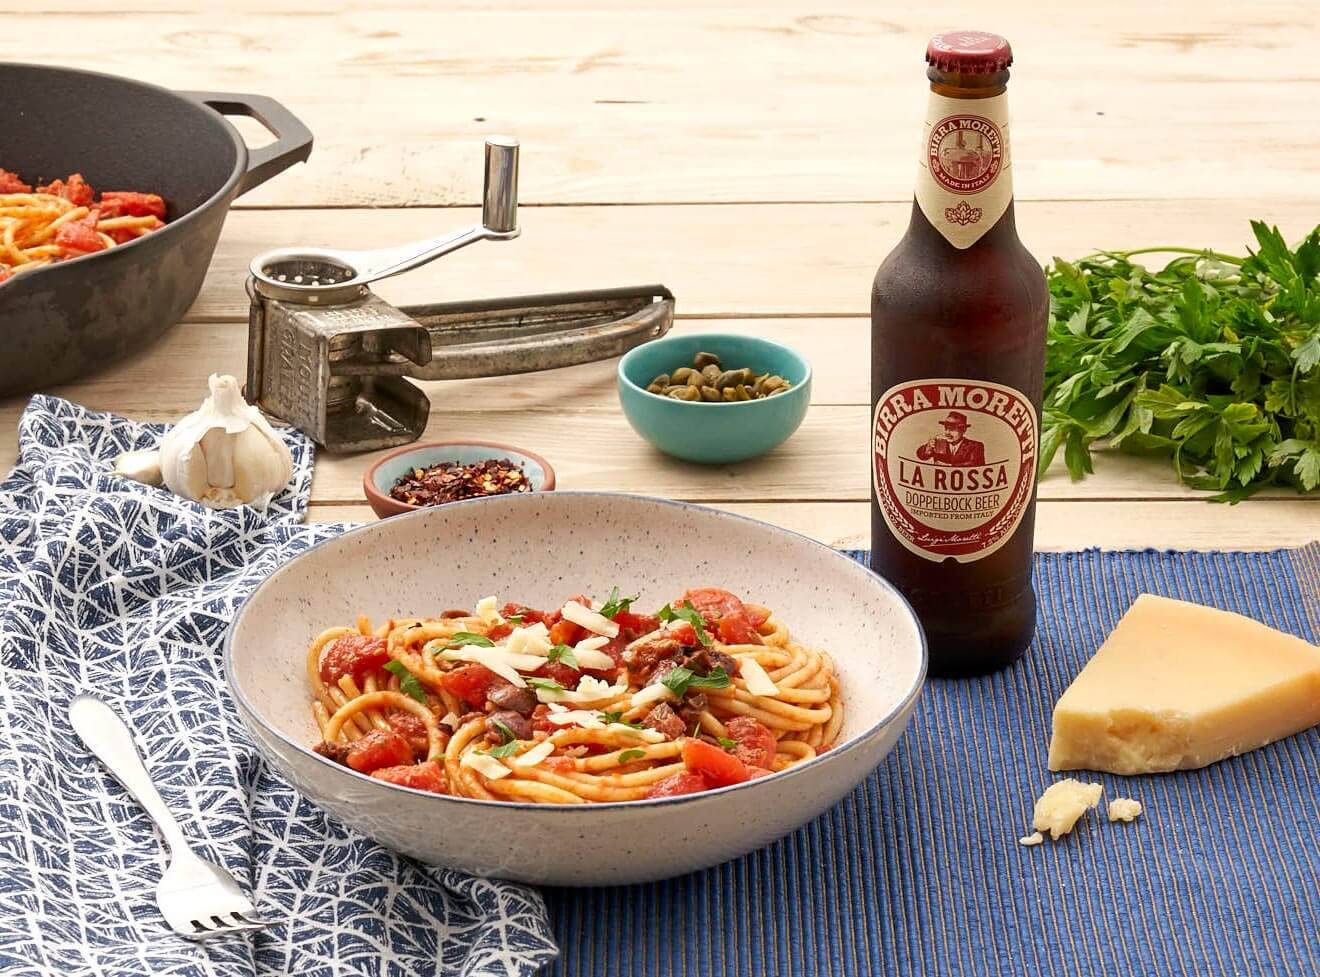 Birra Moretti 'What's More Italian' Summer Program, bottle and dishes display on dining table, garnishes